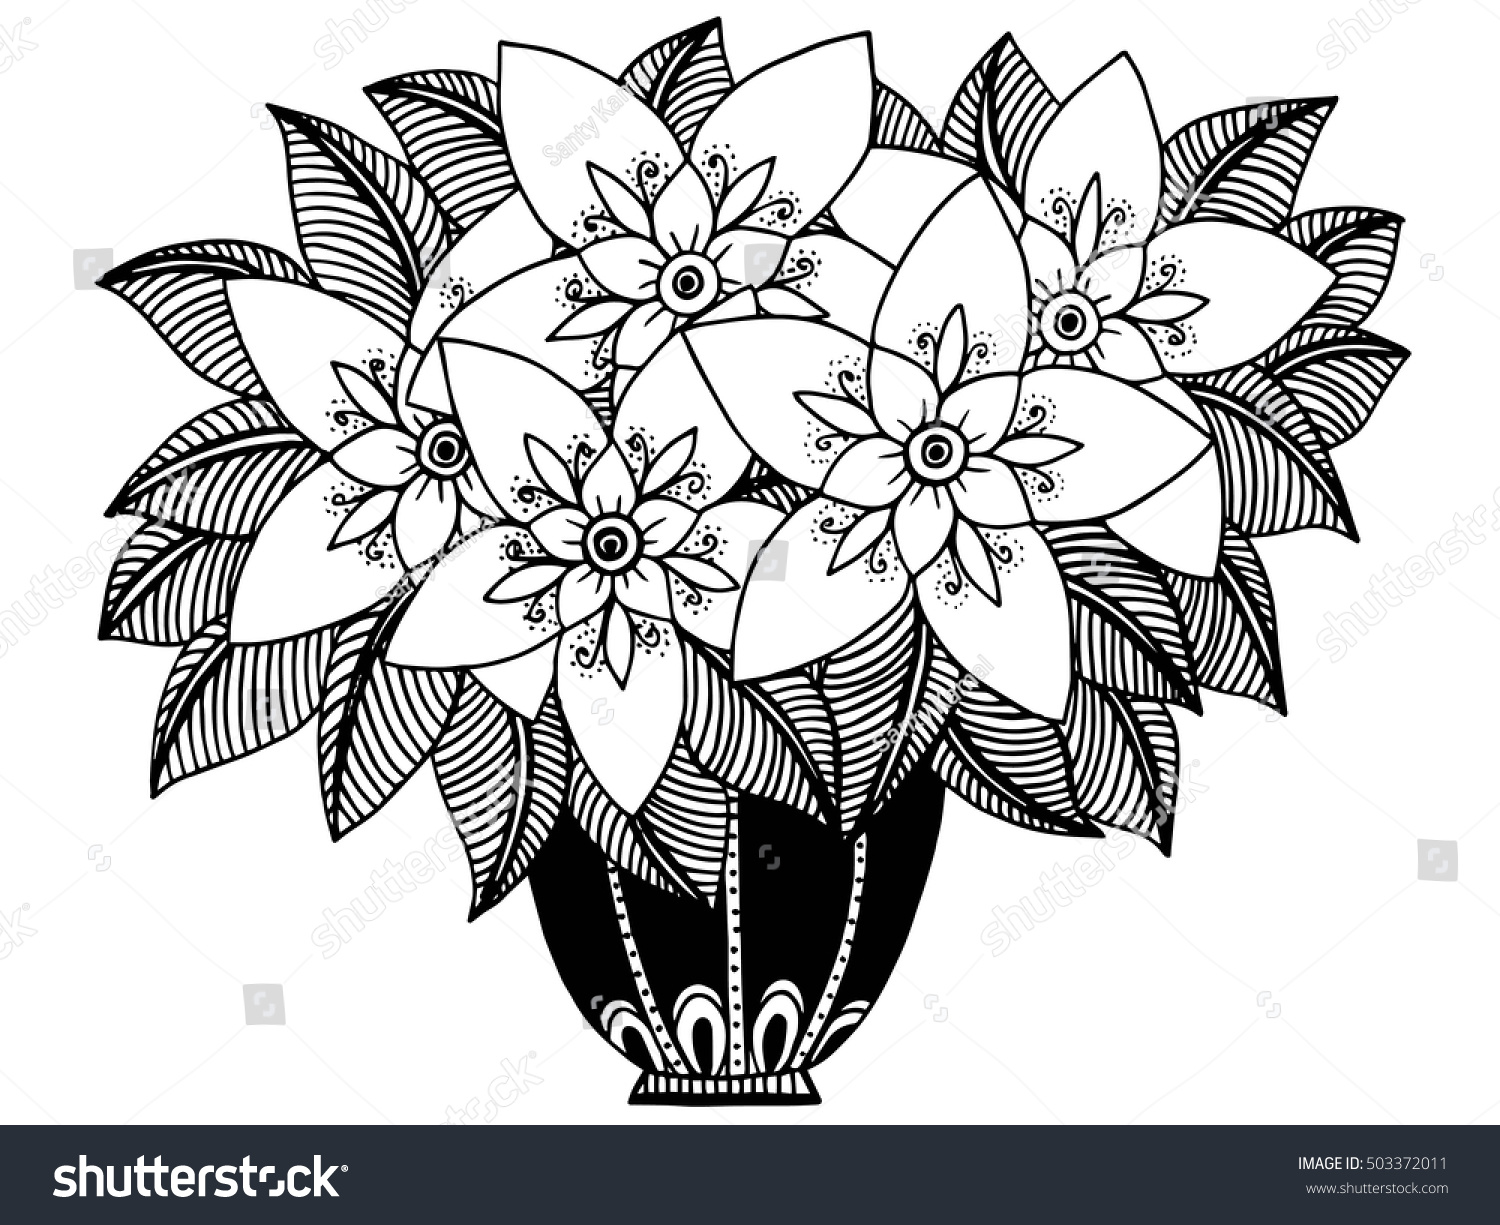 Doodle flowers vase floral pattern black stock vector 503372011 doodle flowers and a vase floral pattern in black and white colors reviewsmspy